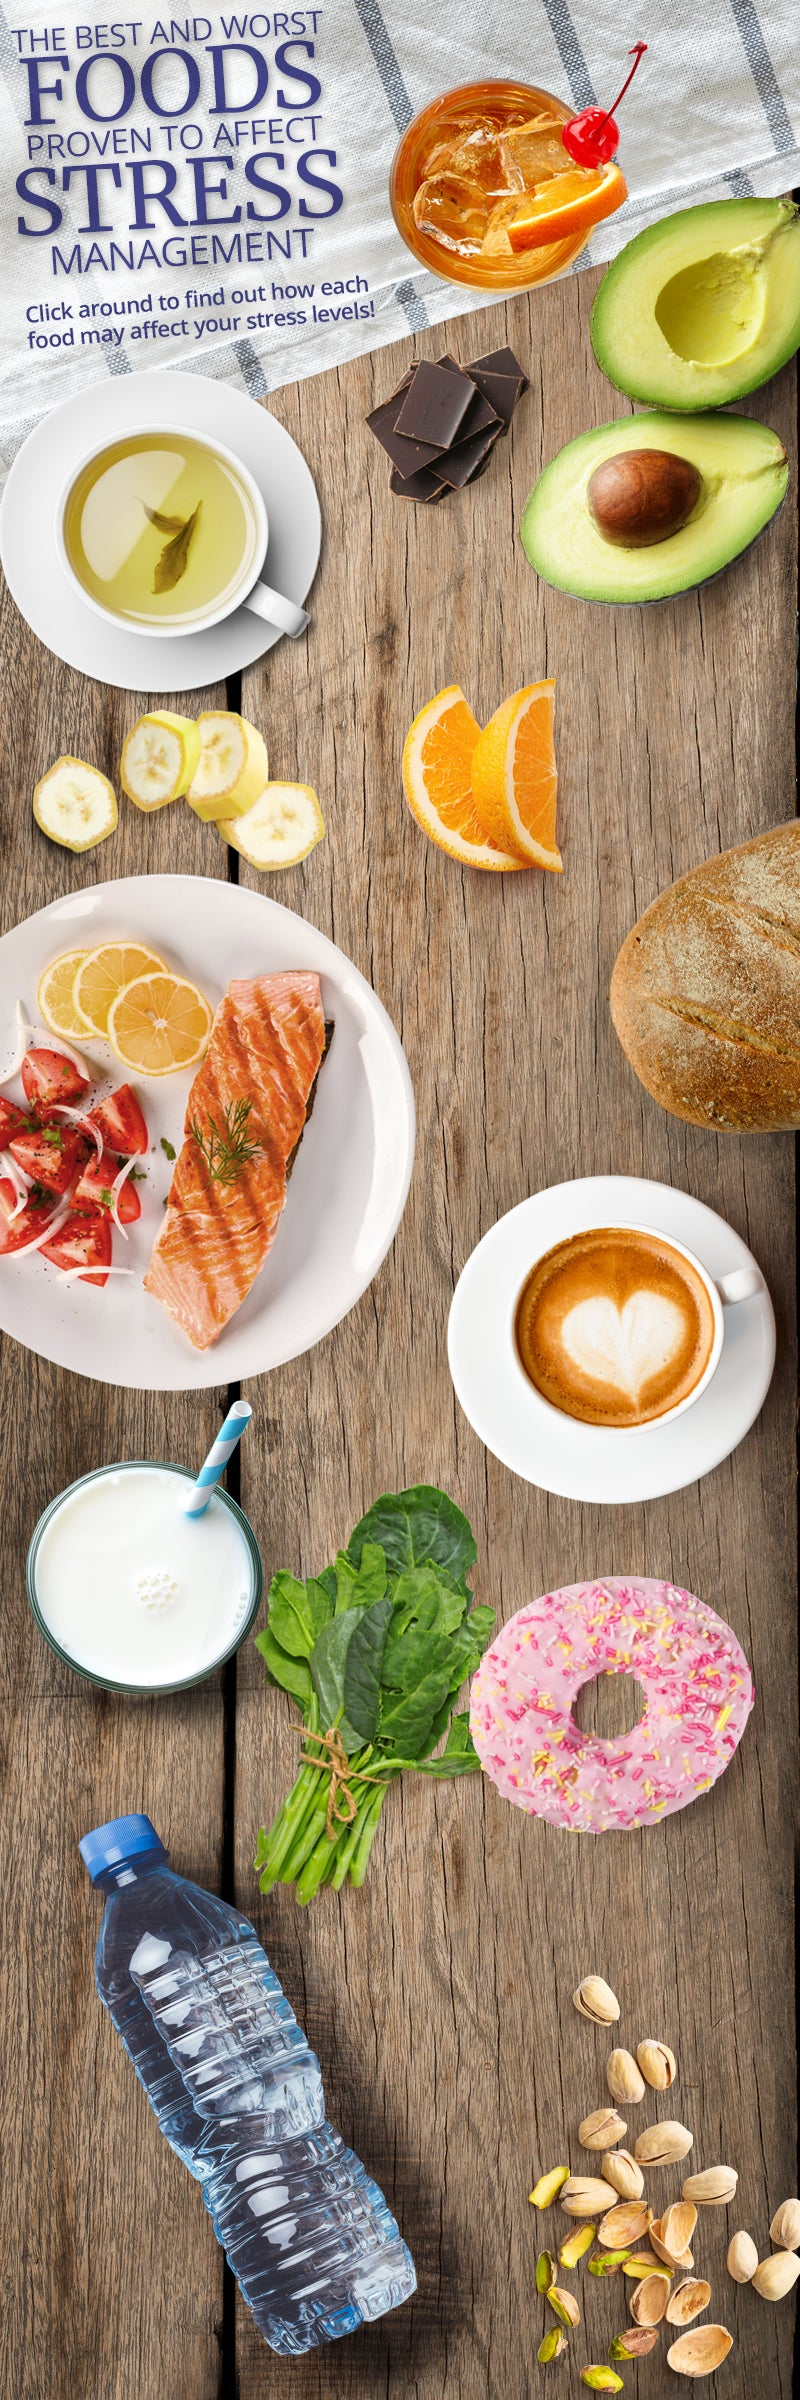 how does diet affect stress